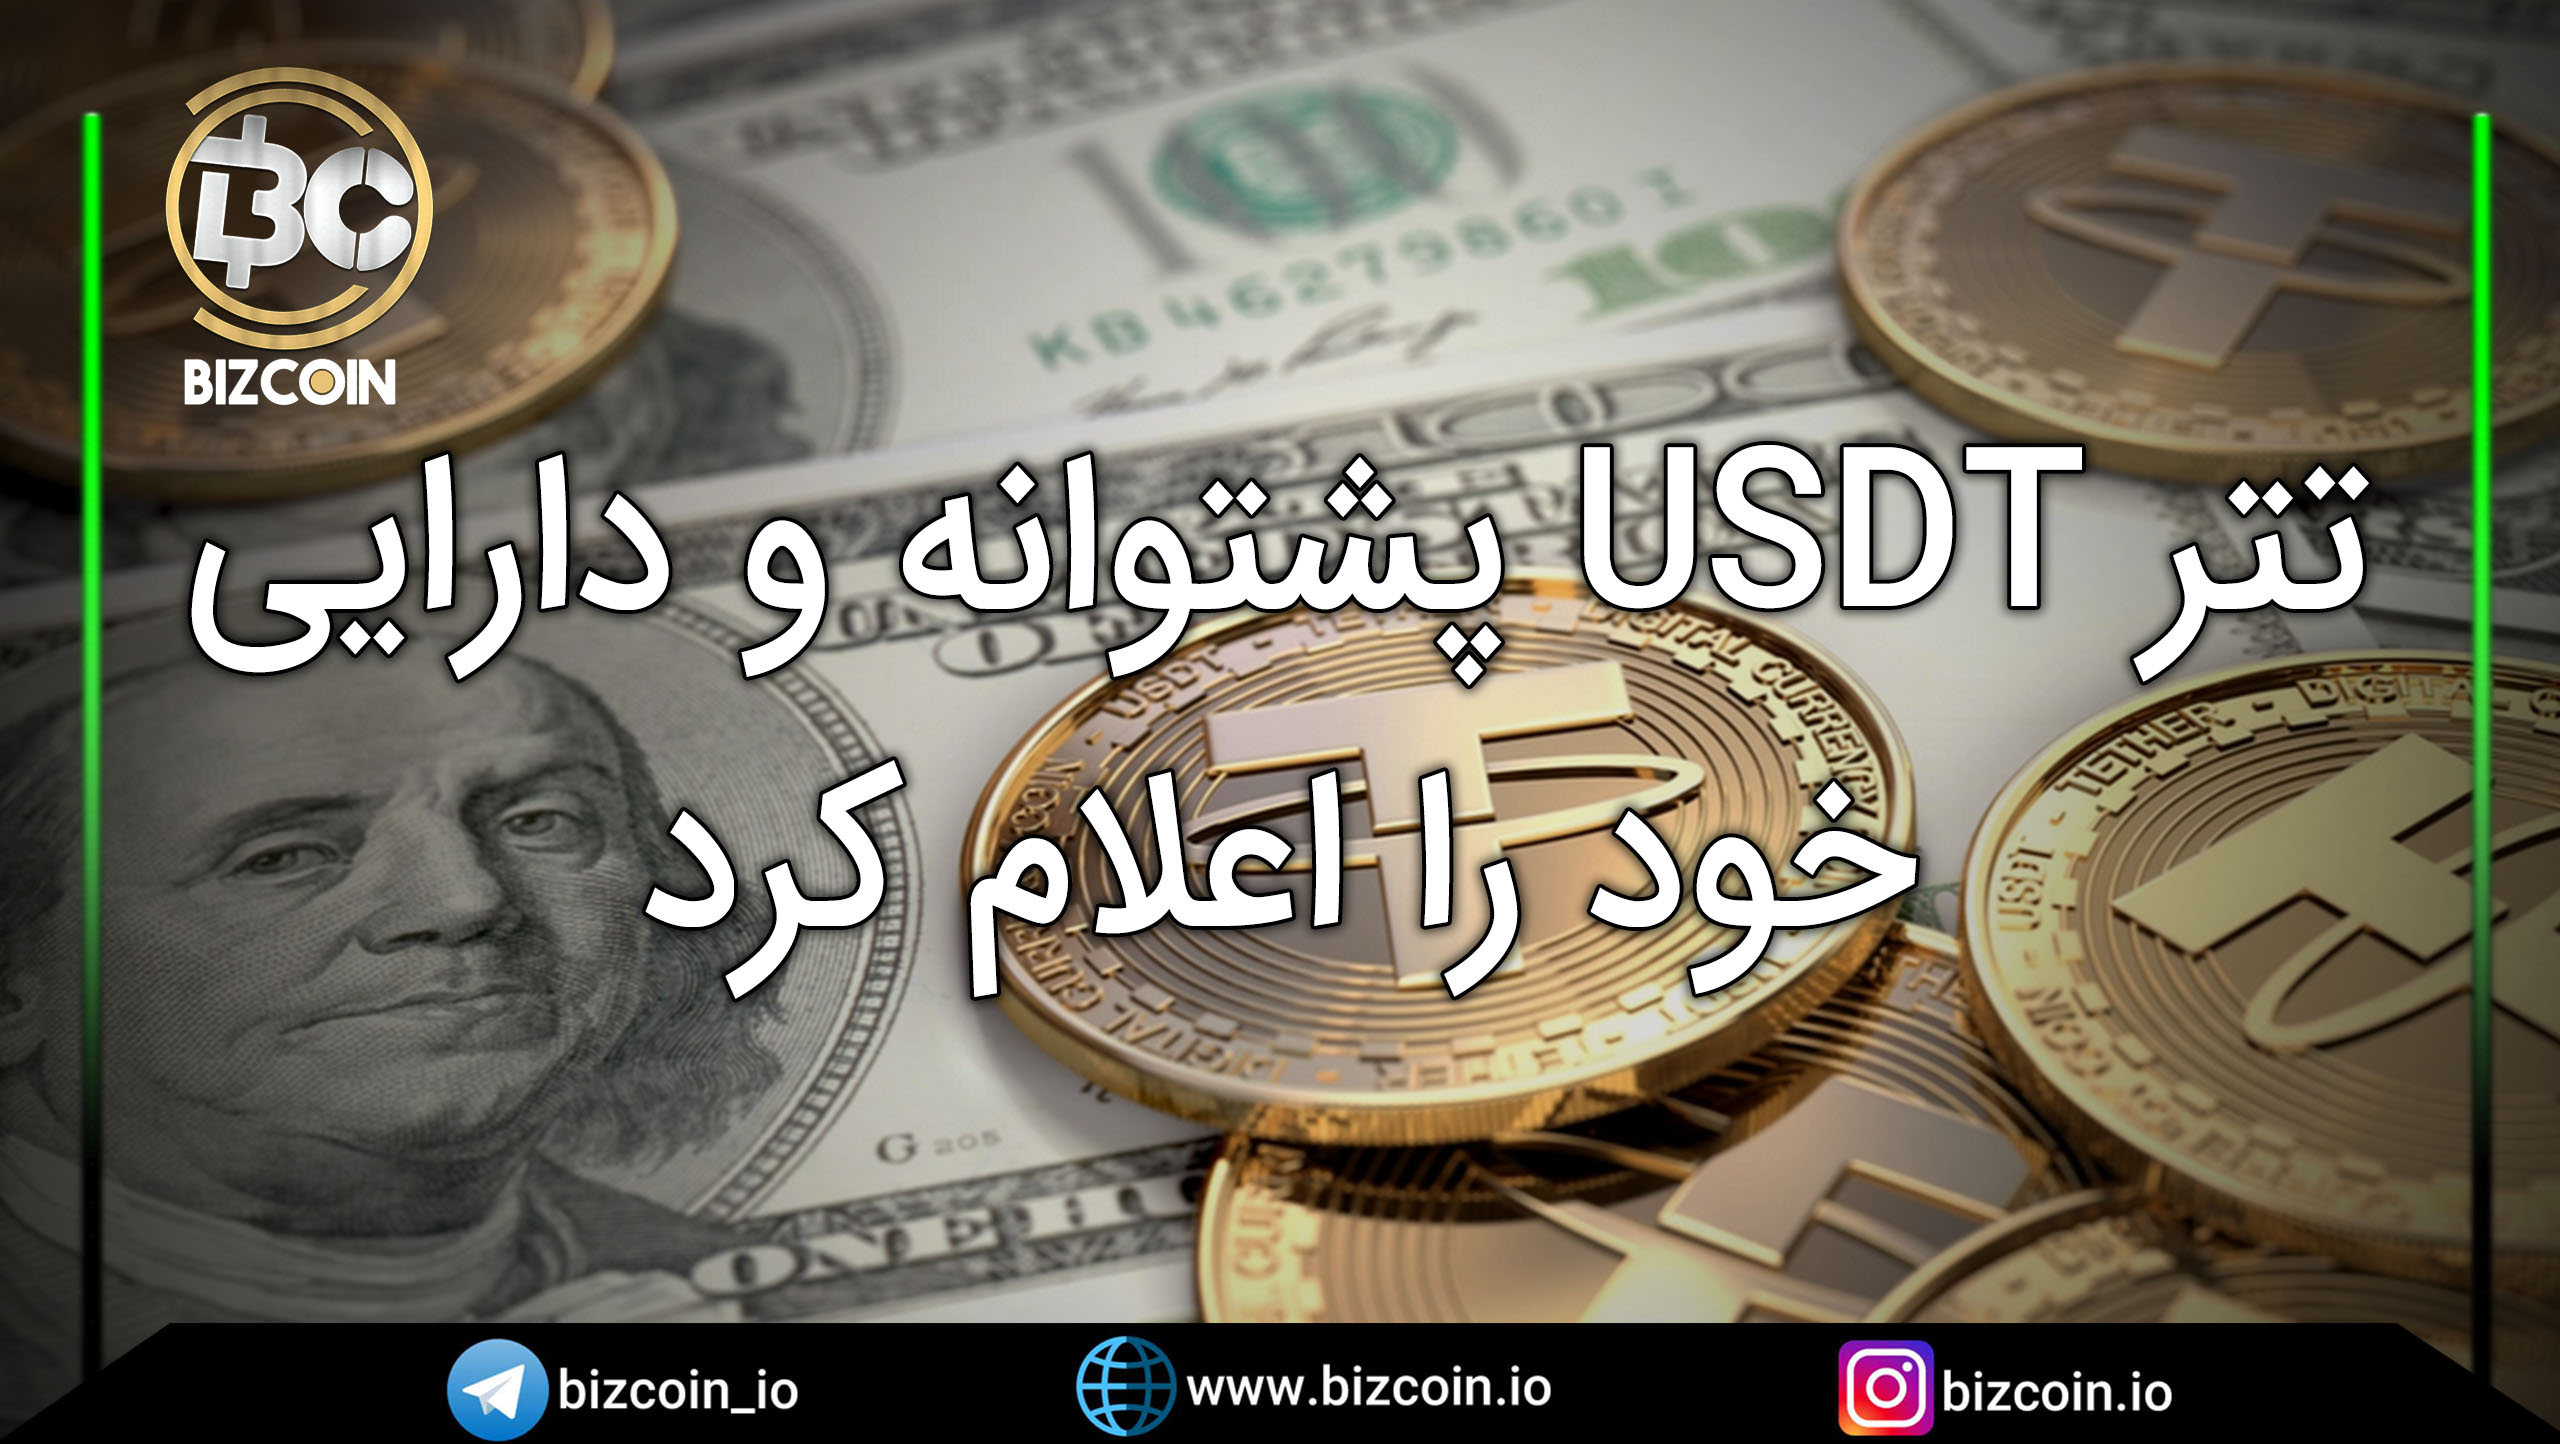 tether usdt announced its support and assets تتر USDT پشتوانه و دارایی خود را اعلام کرد